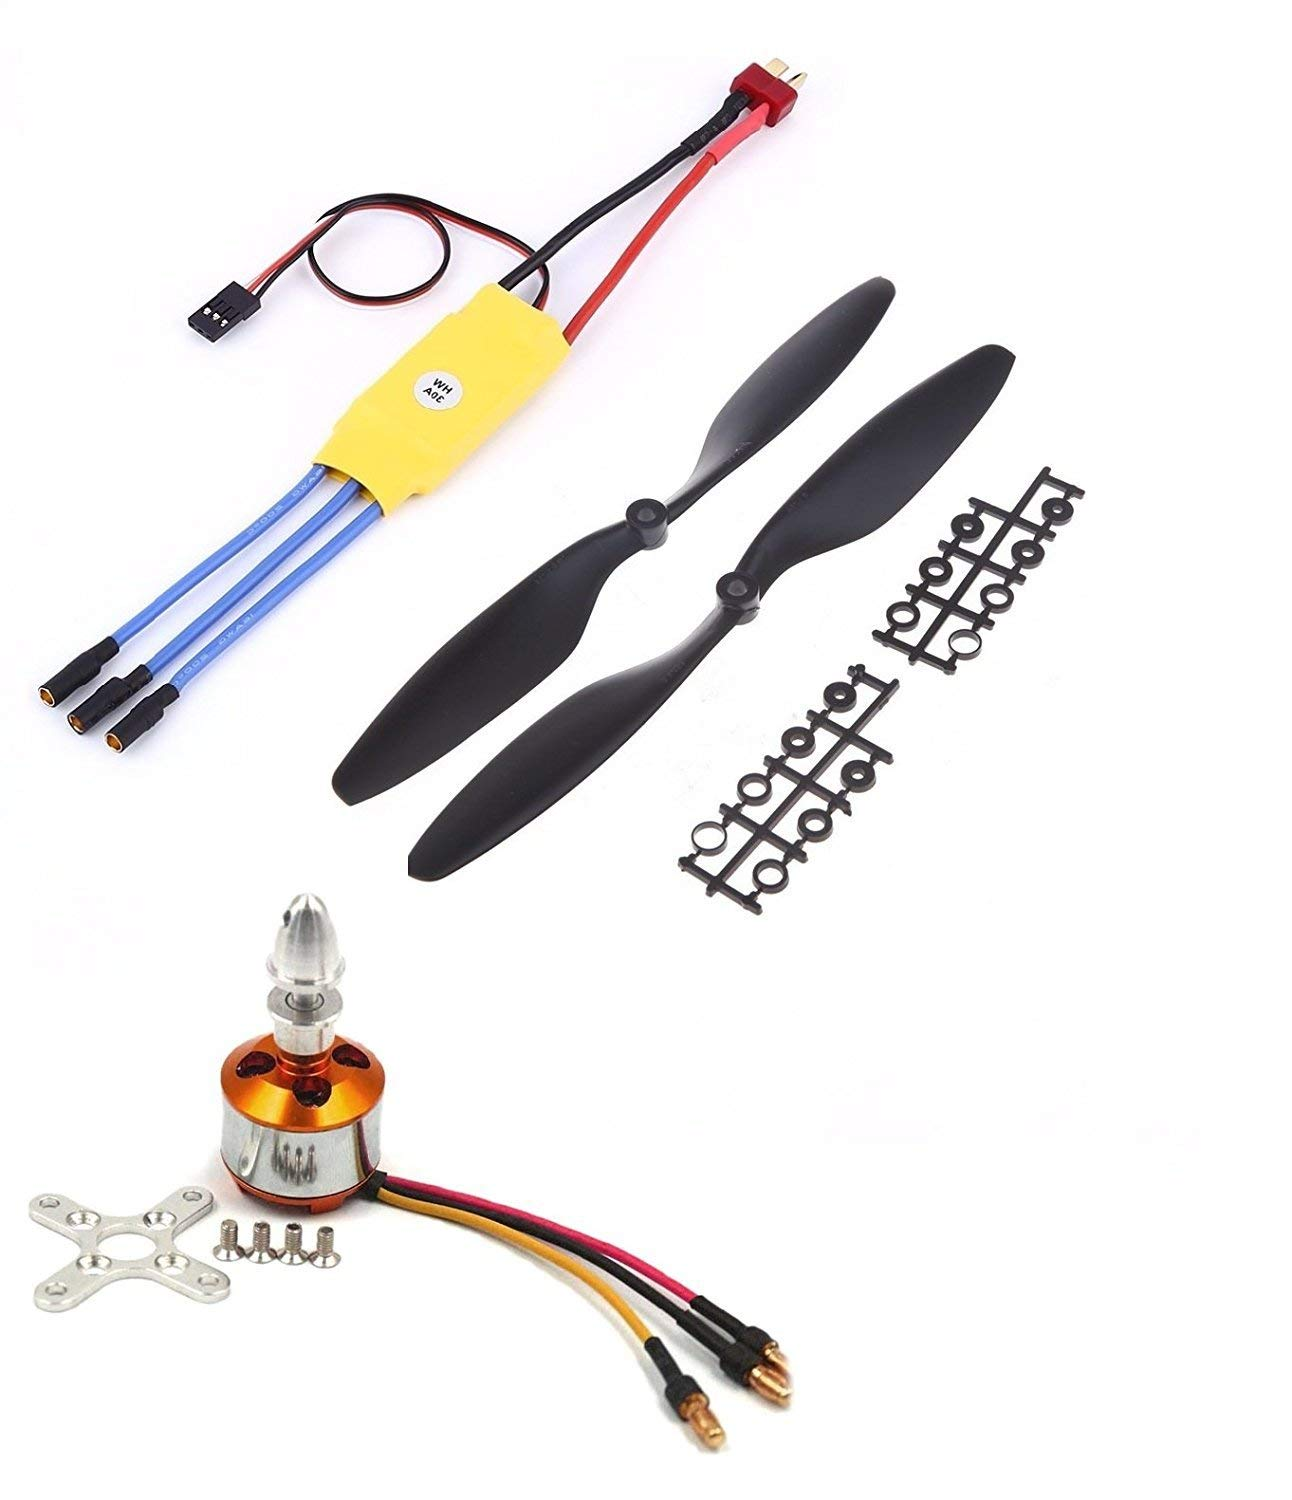 A2212 1400KV Brushless Motor for Drone with SimonK 30A ESC and 1045  Propeller Set